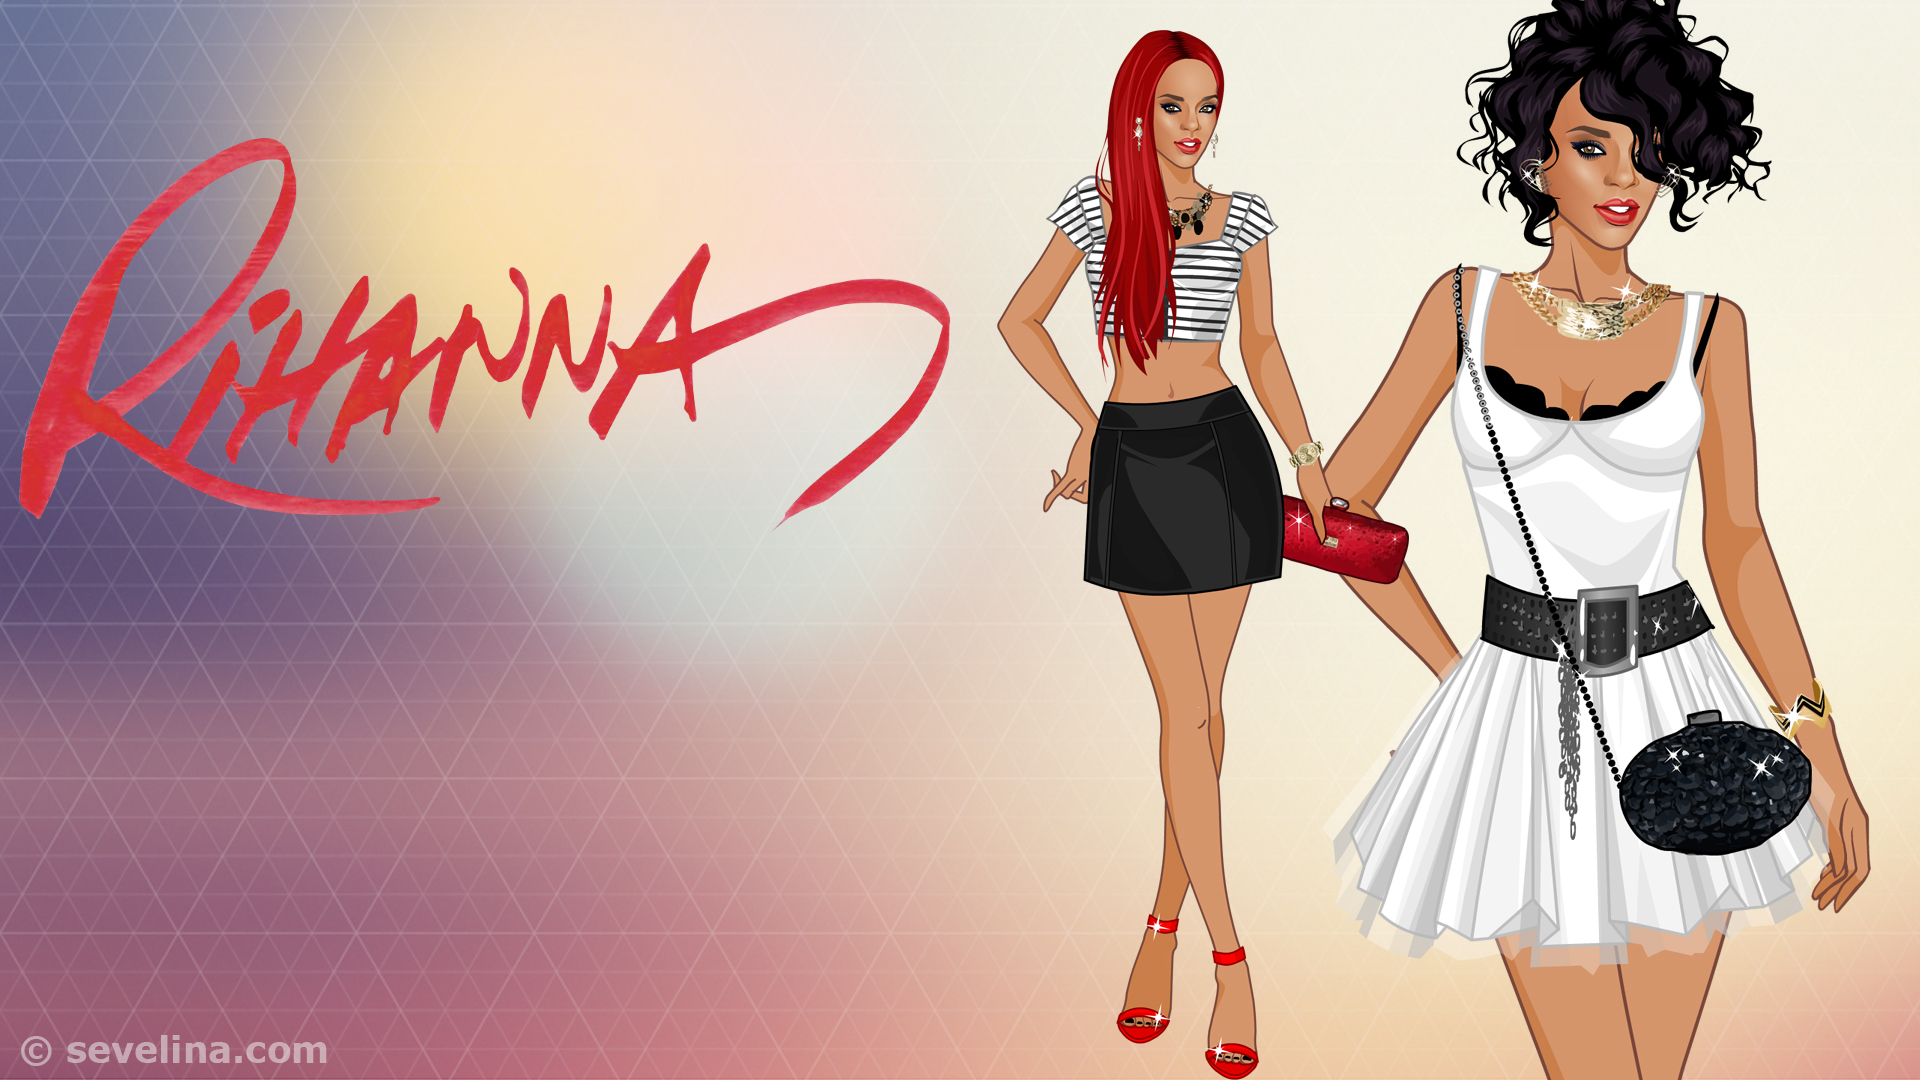 rihanna-wallpapers-2014-sevelina-dress-up-games-2